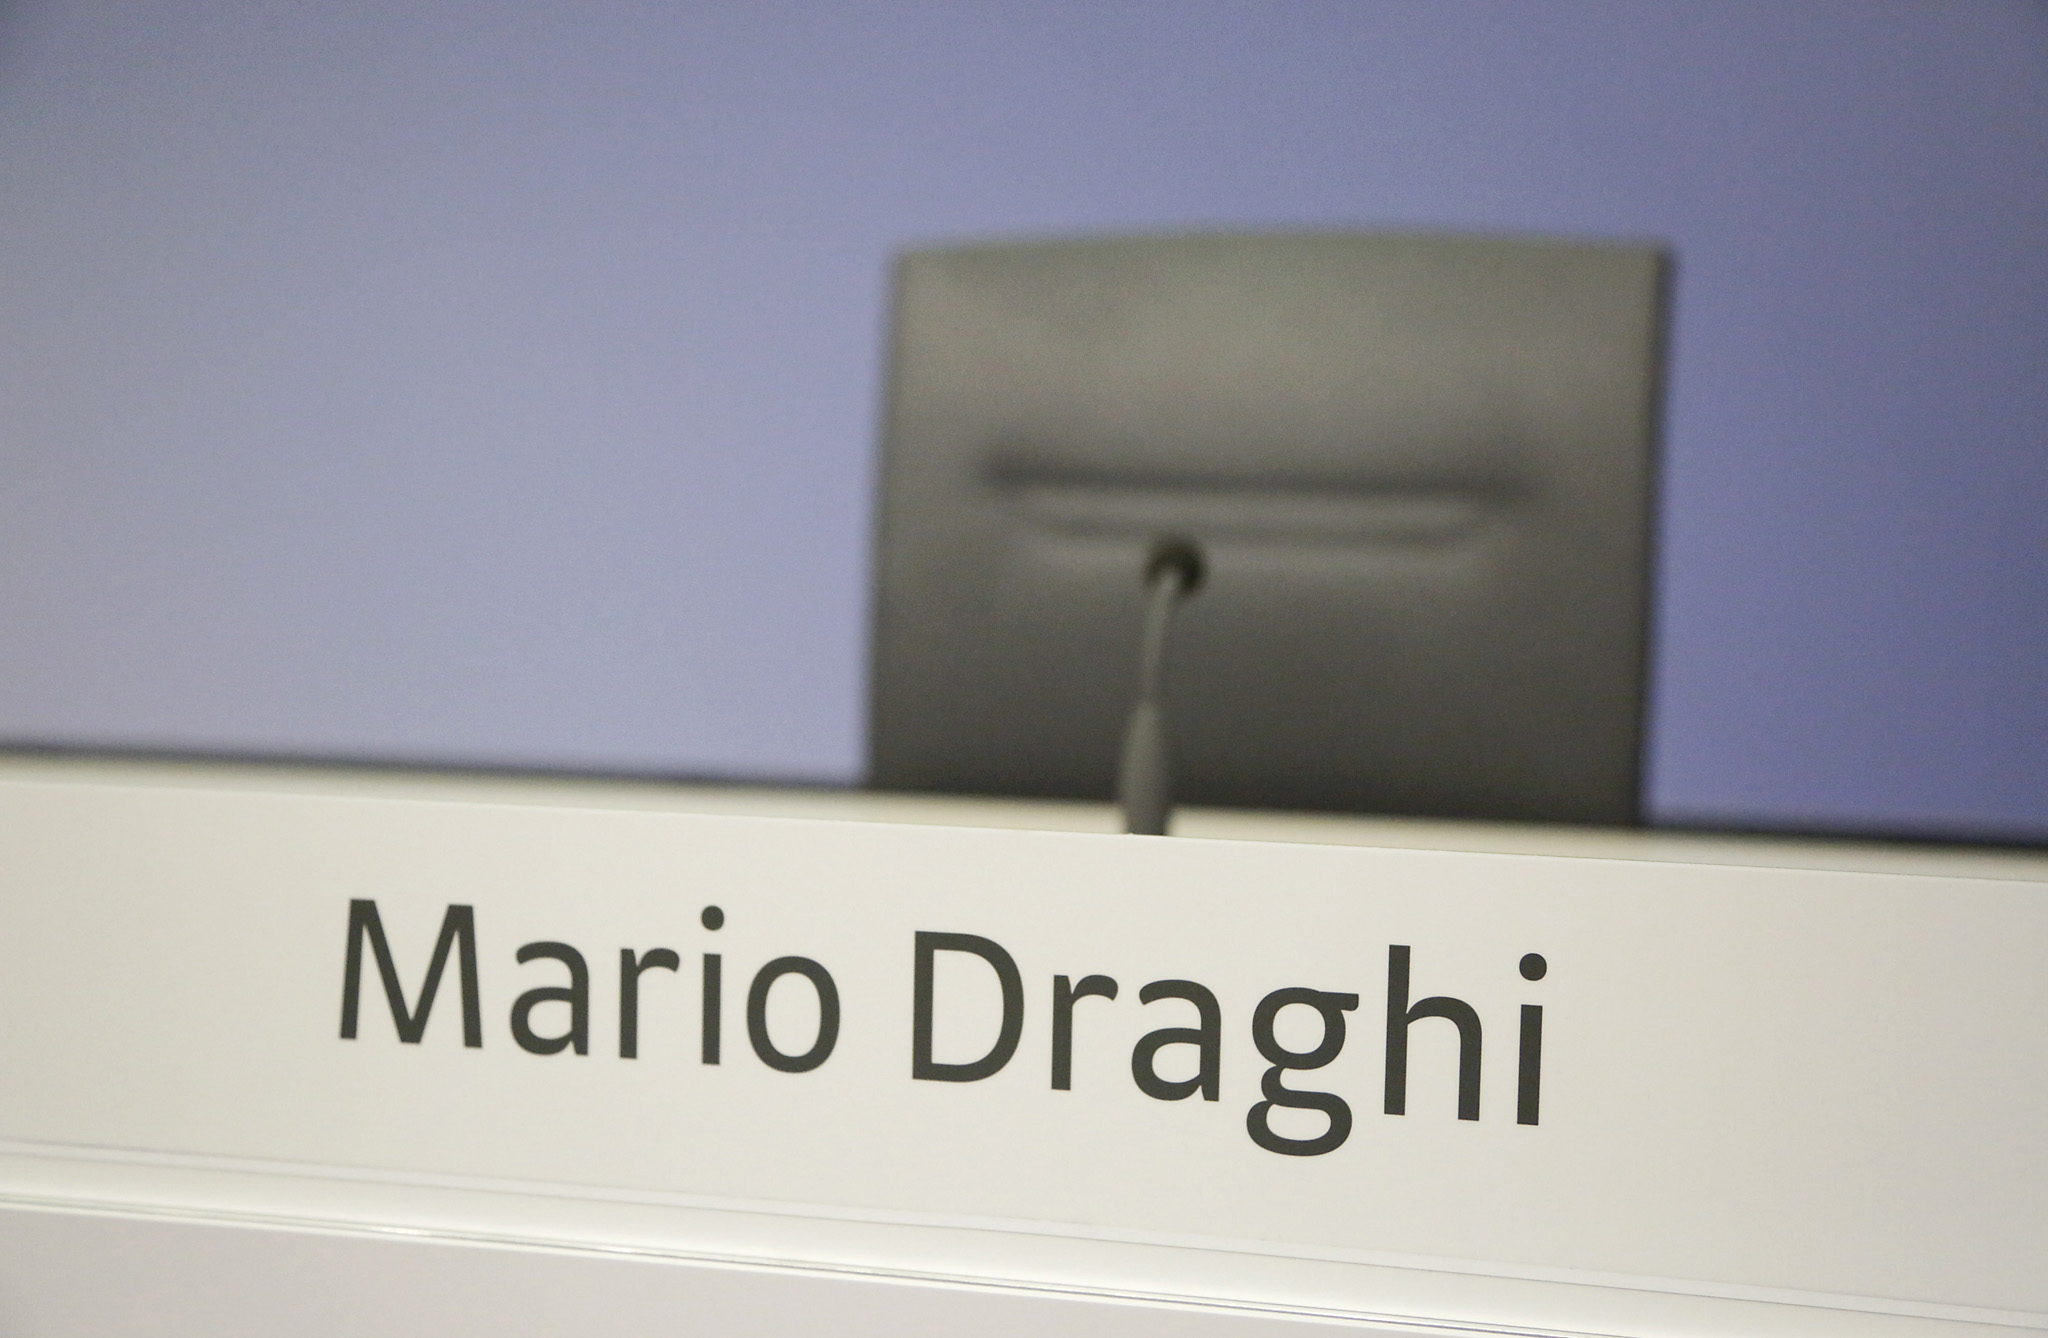 European Central Bank President Mario Draghi Announces Interest Rate Decision...An empty chair stands in the news conference room before the arrival of Mario Draghi, president of the European Central Bank (ECB), to announce the bank's interest rate decision at the ECB headquarters in Frankfurt, Germany, on Thursday, March 10, 2016. Draghi will unveil fresh economic projections that for the first time will extend to 2018, and oil's slump will likely lead to downward revisions from the December outlook when inflation was projected to average 1 percent this year and 1.6 percent in 2017